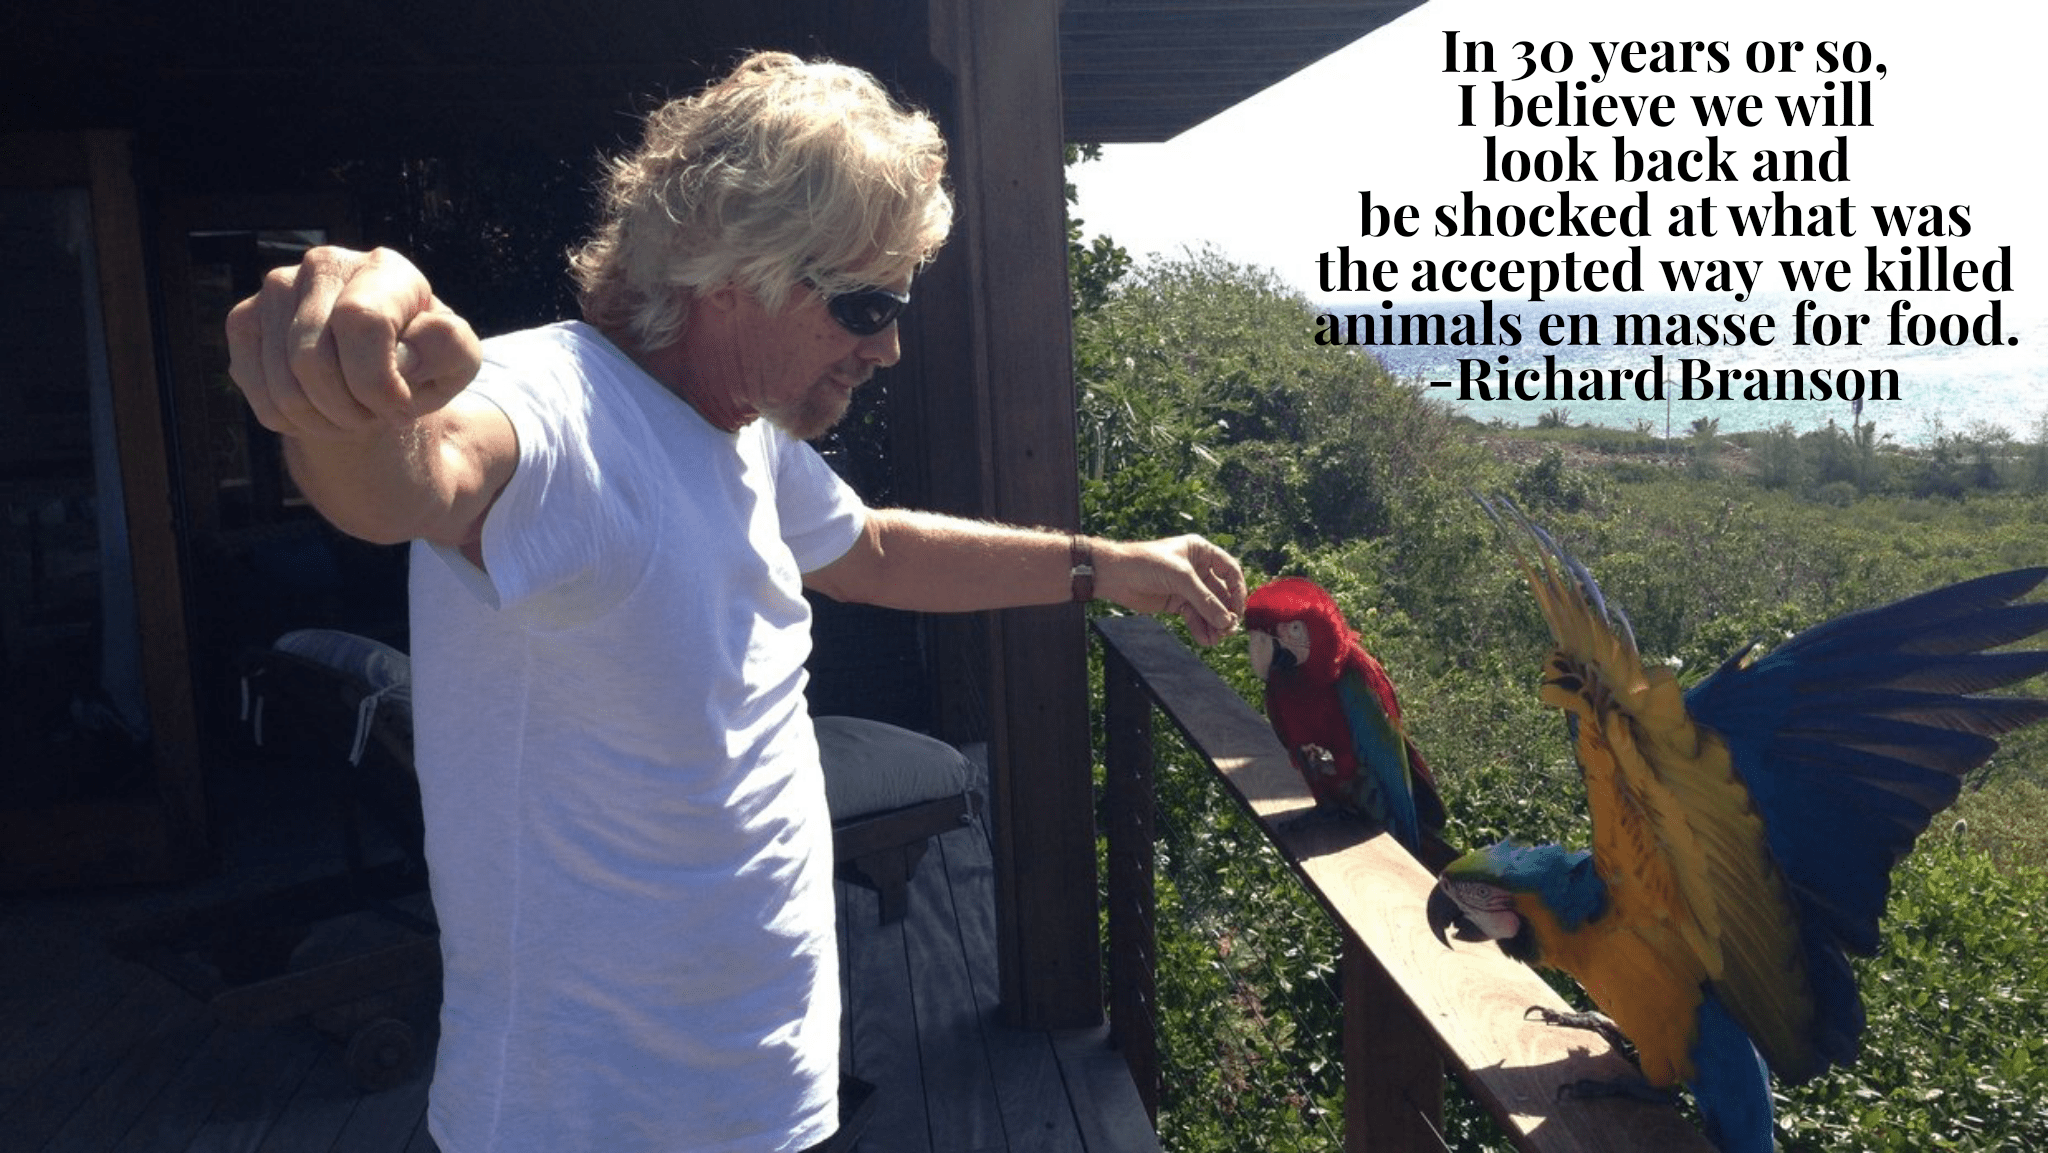 """In 30 years or so, I believe we will look back and be shocked at what was the accepted way we killed animals in masse for food."" -Richard Branson [2048 x 1153]"